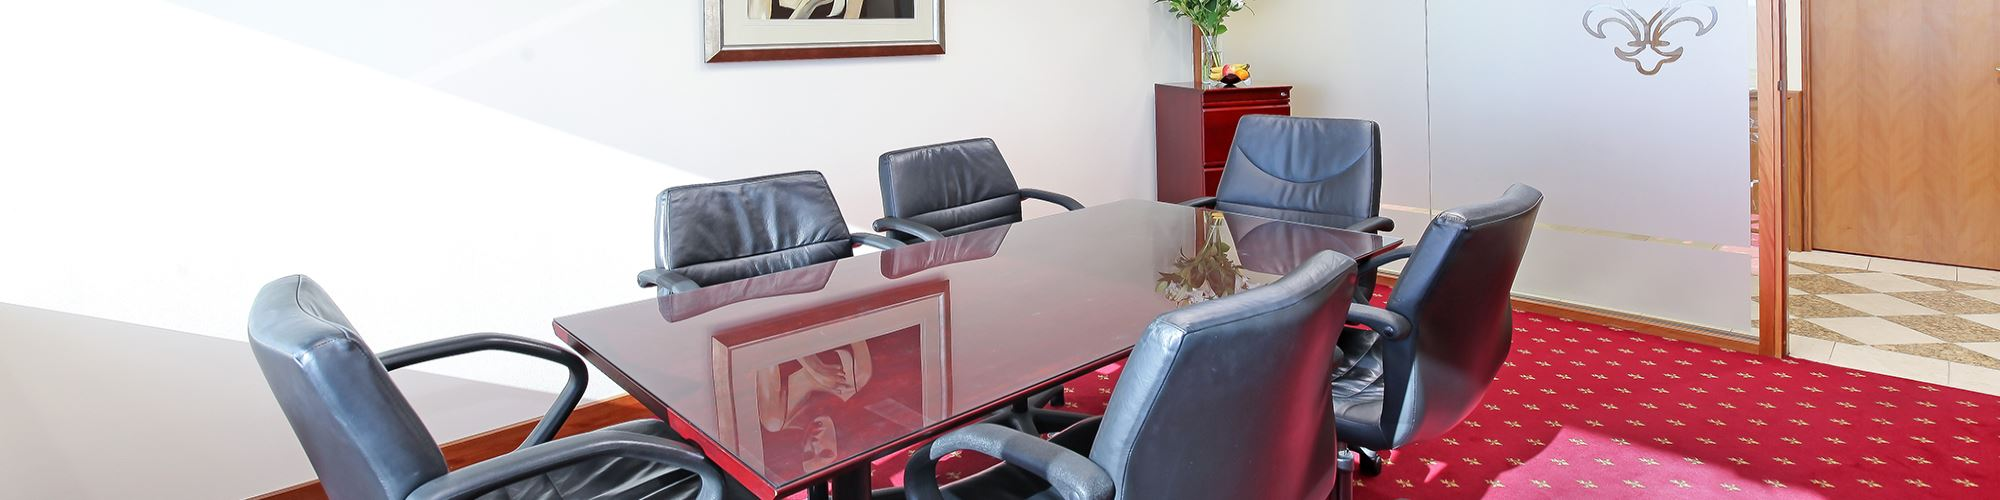 banner-standard-meeting-room-2.jpg